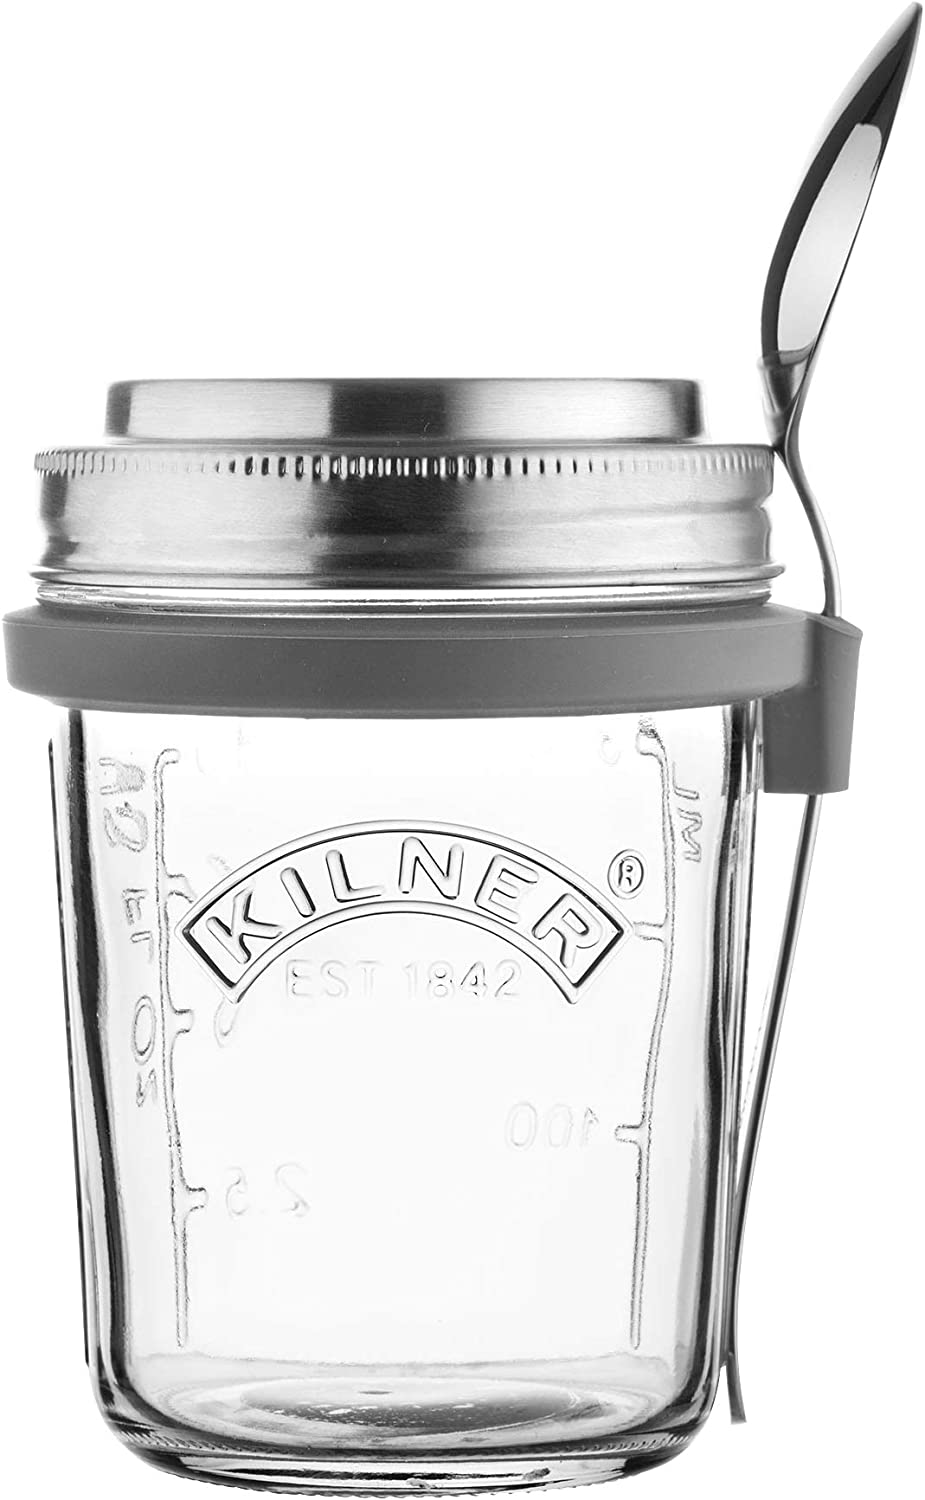 Kilner 0025.899 Breakfast Jar Set, Glass